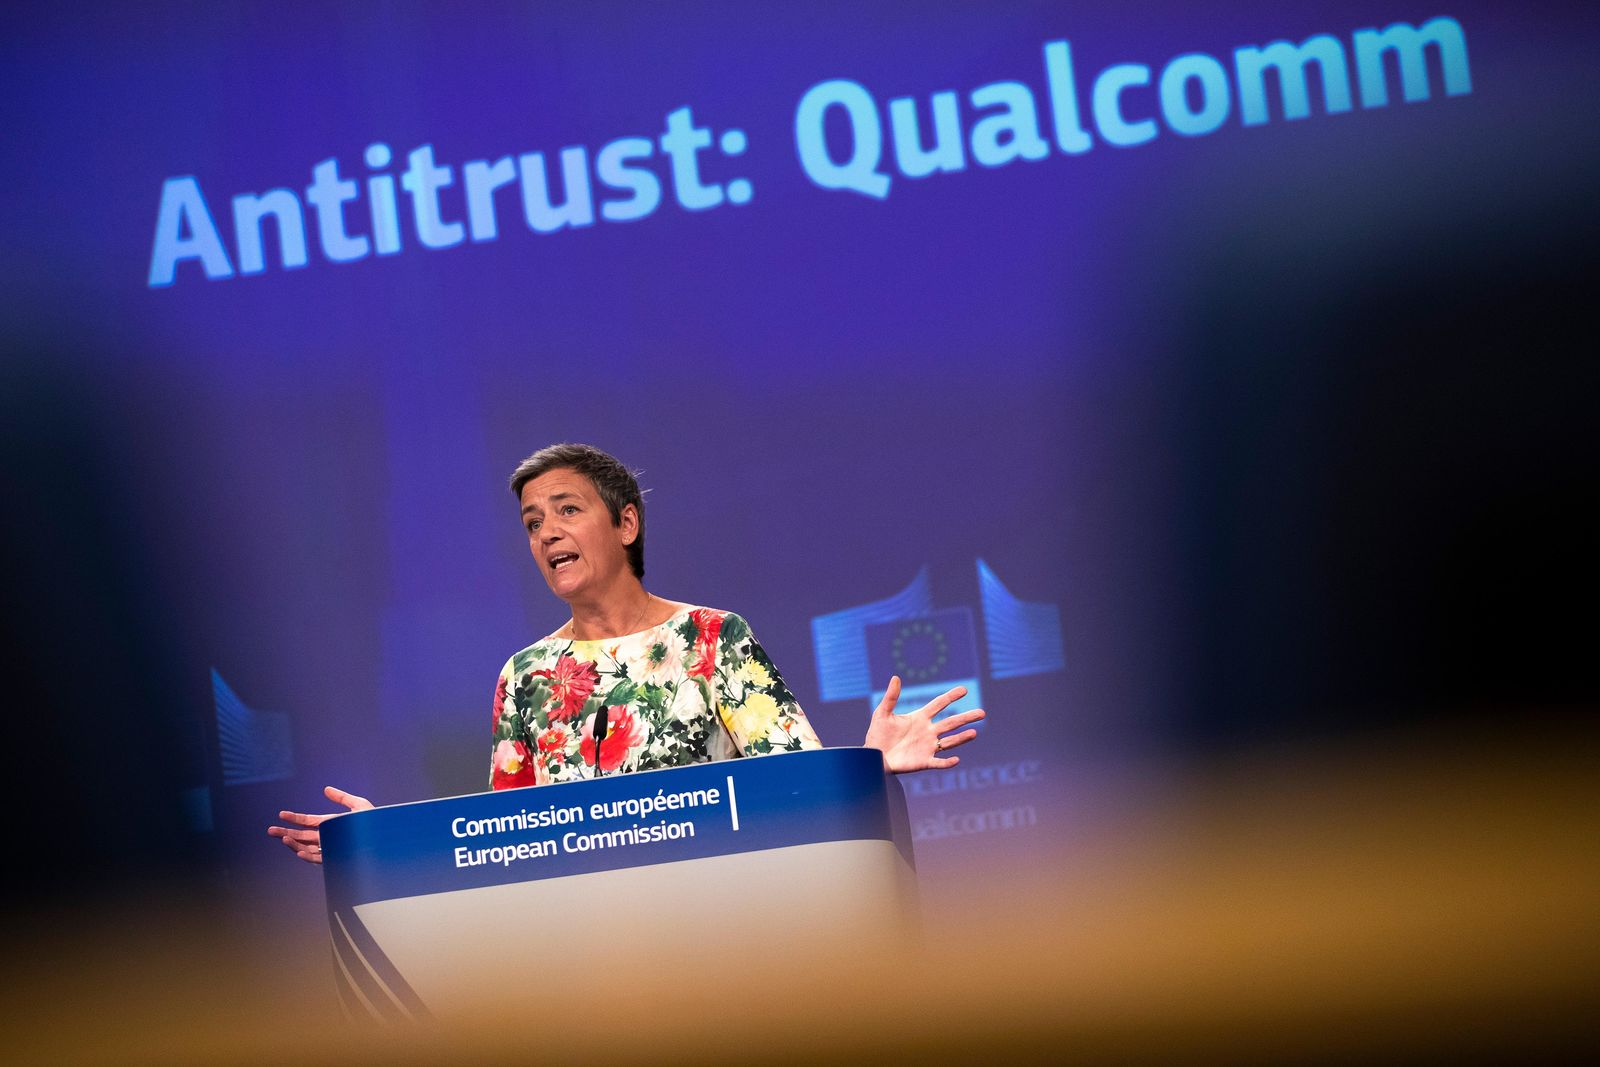 European Antitrust Commissioner Margrethe Vestager talks to journalists during a news conference at the European Commission headquarters in Brussels, Thursday, July 18, 2019.{ } (AP Photo/Francisco Seco)